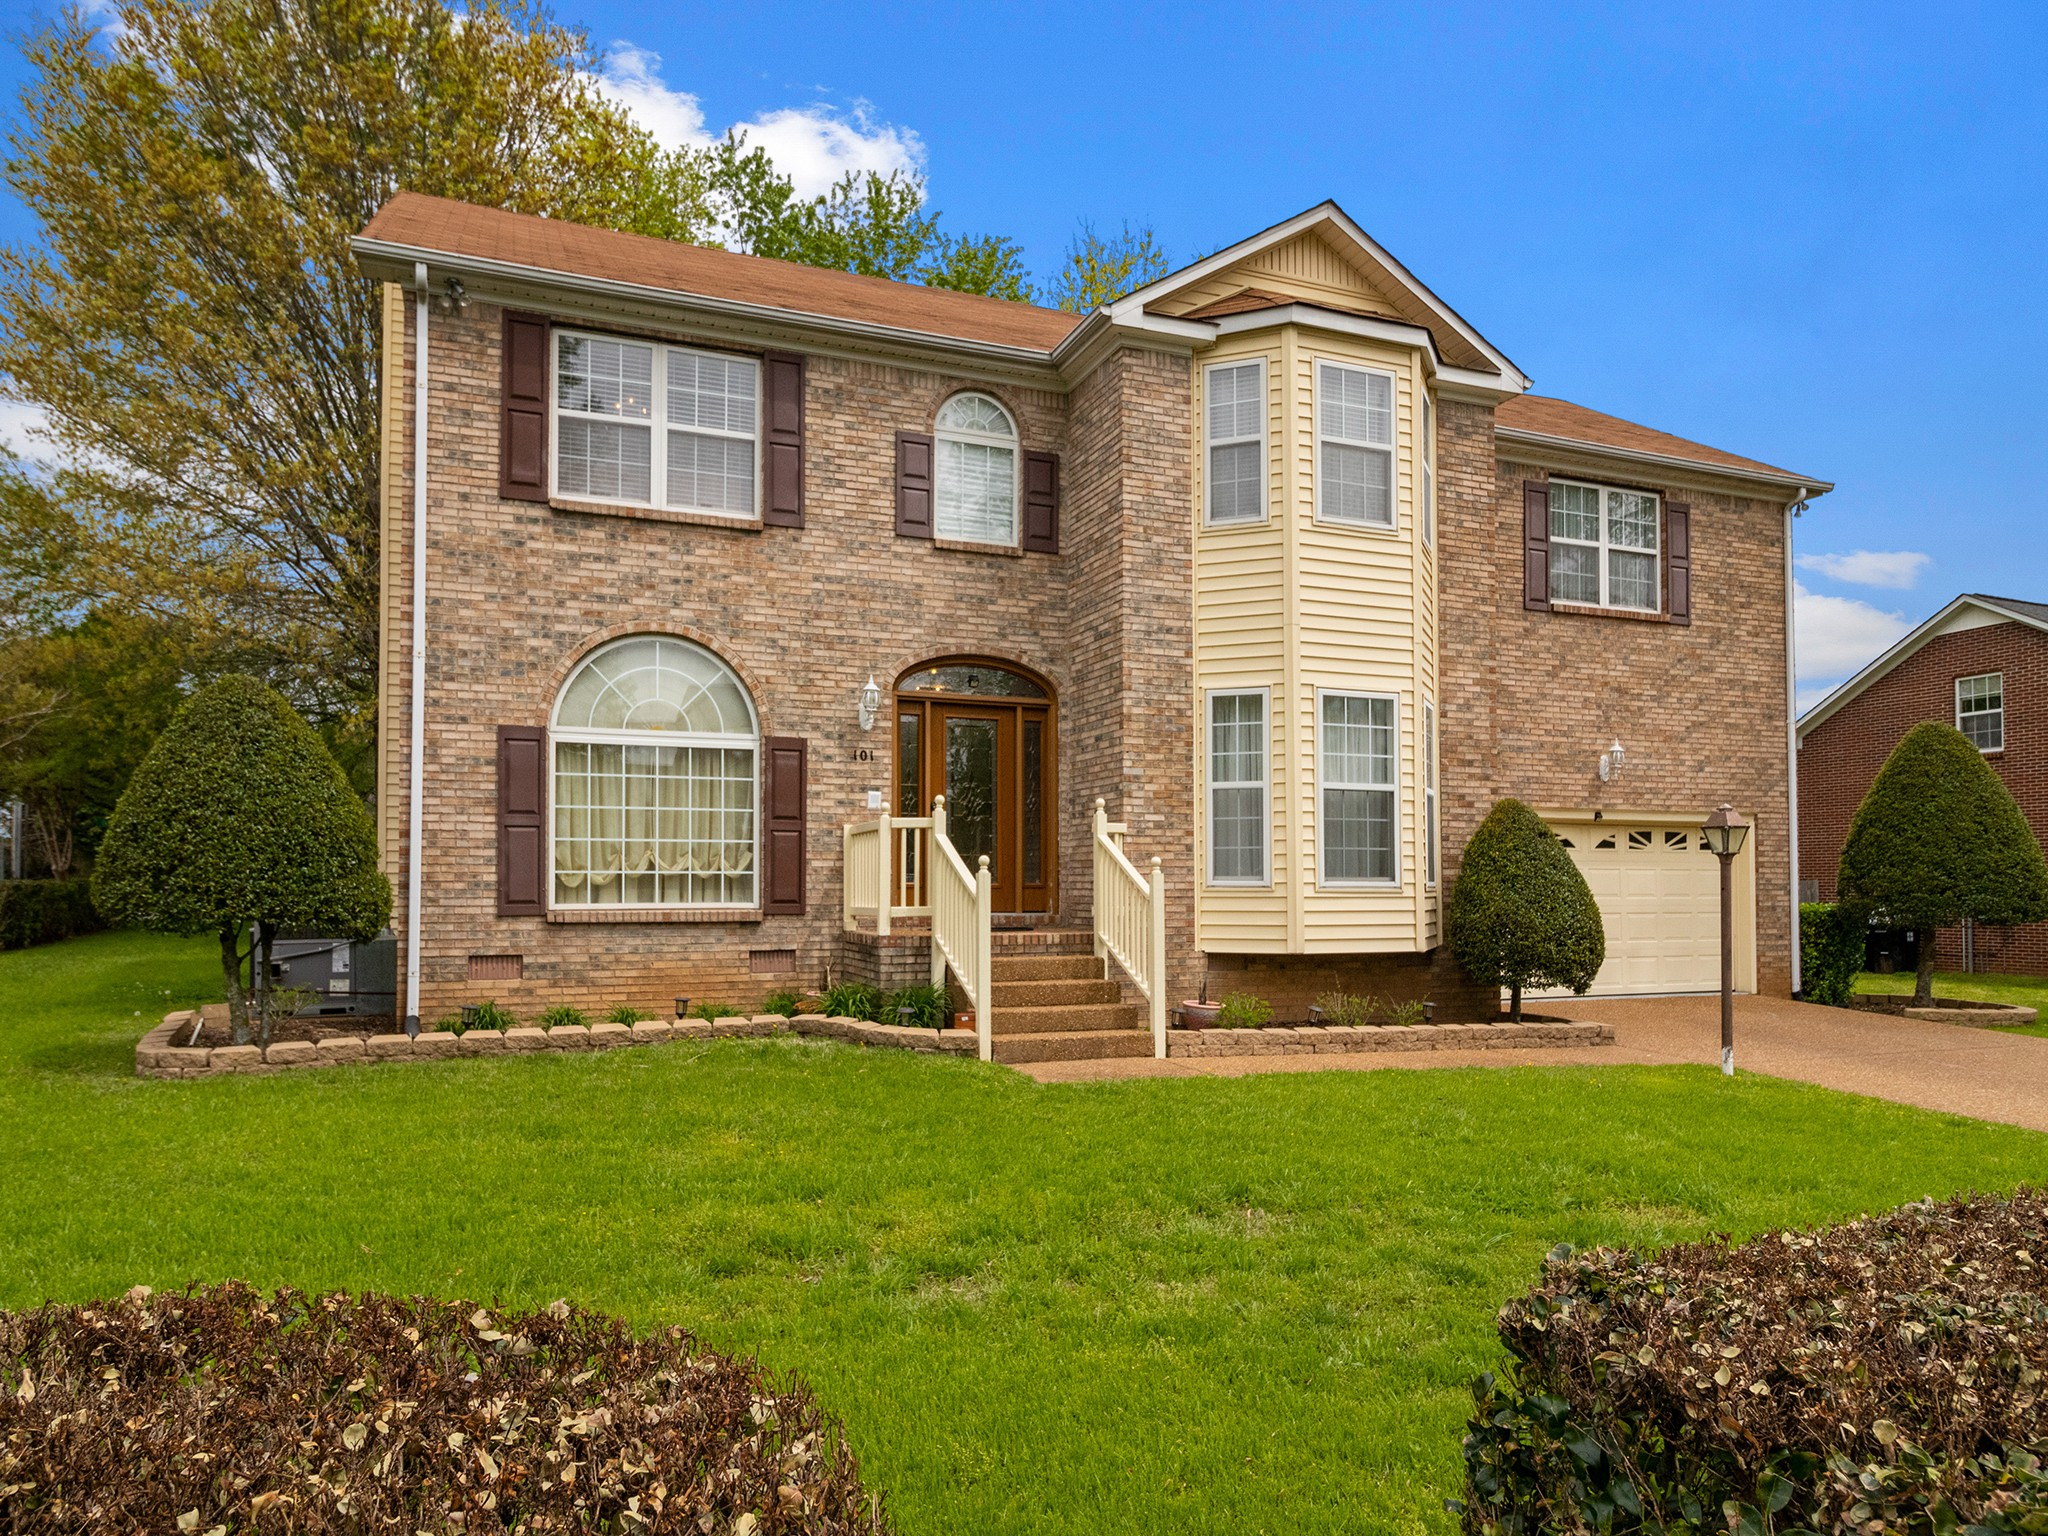 101 Green Tree Ct Property Photo - Columbia, TN real estate listing